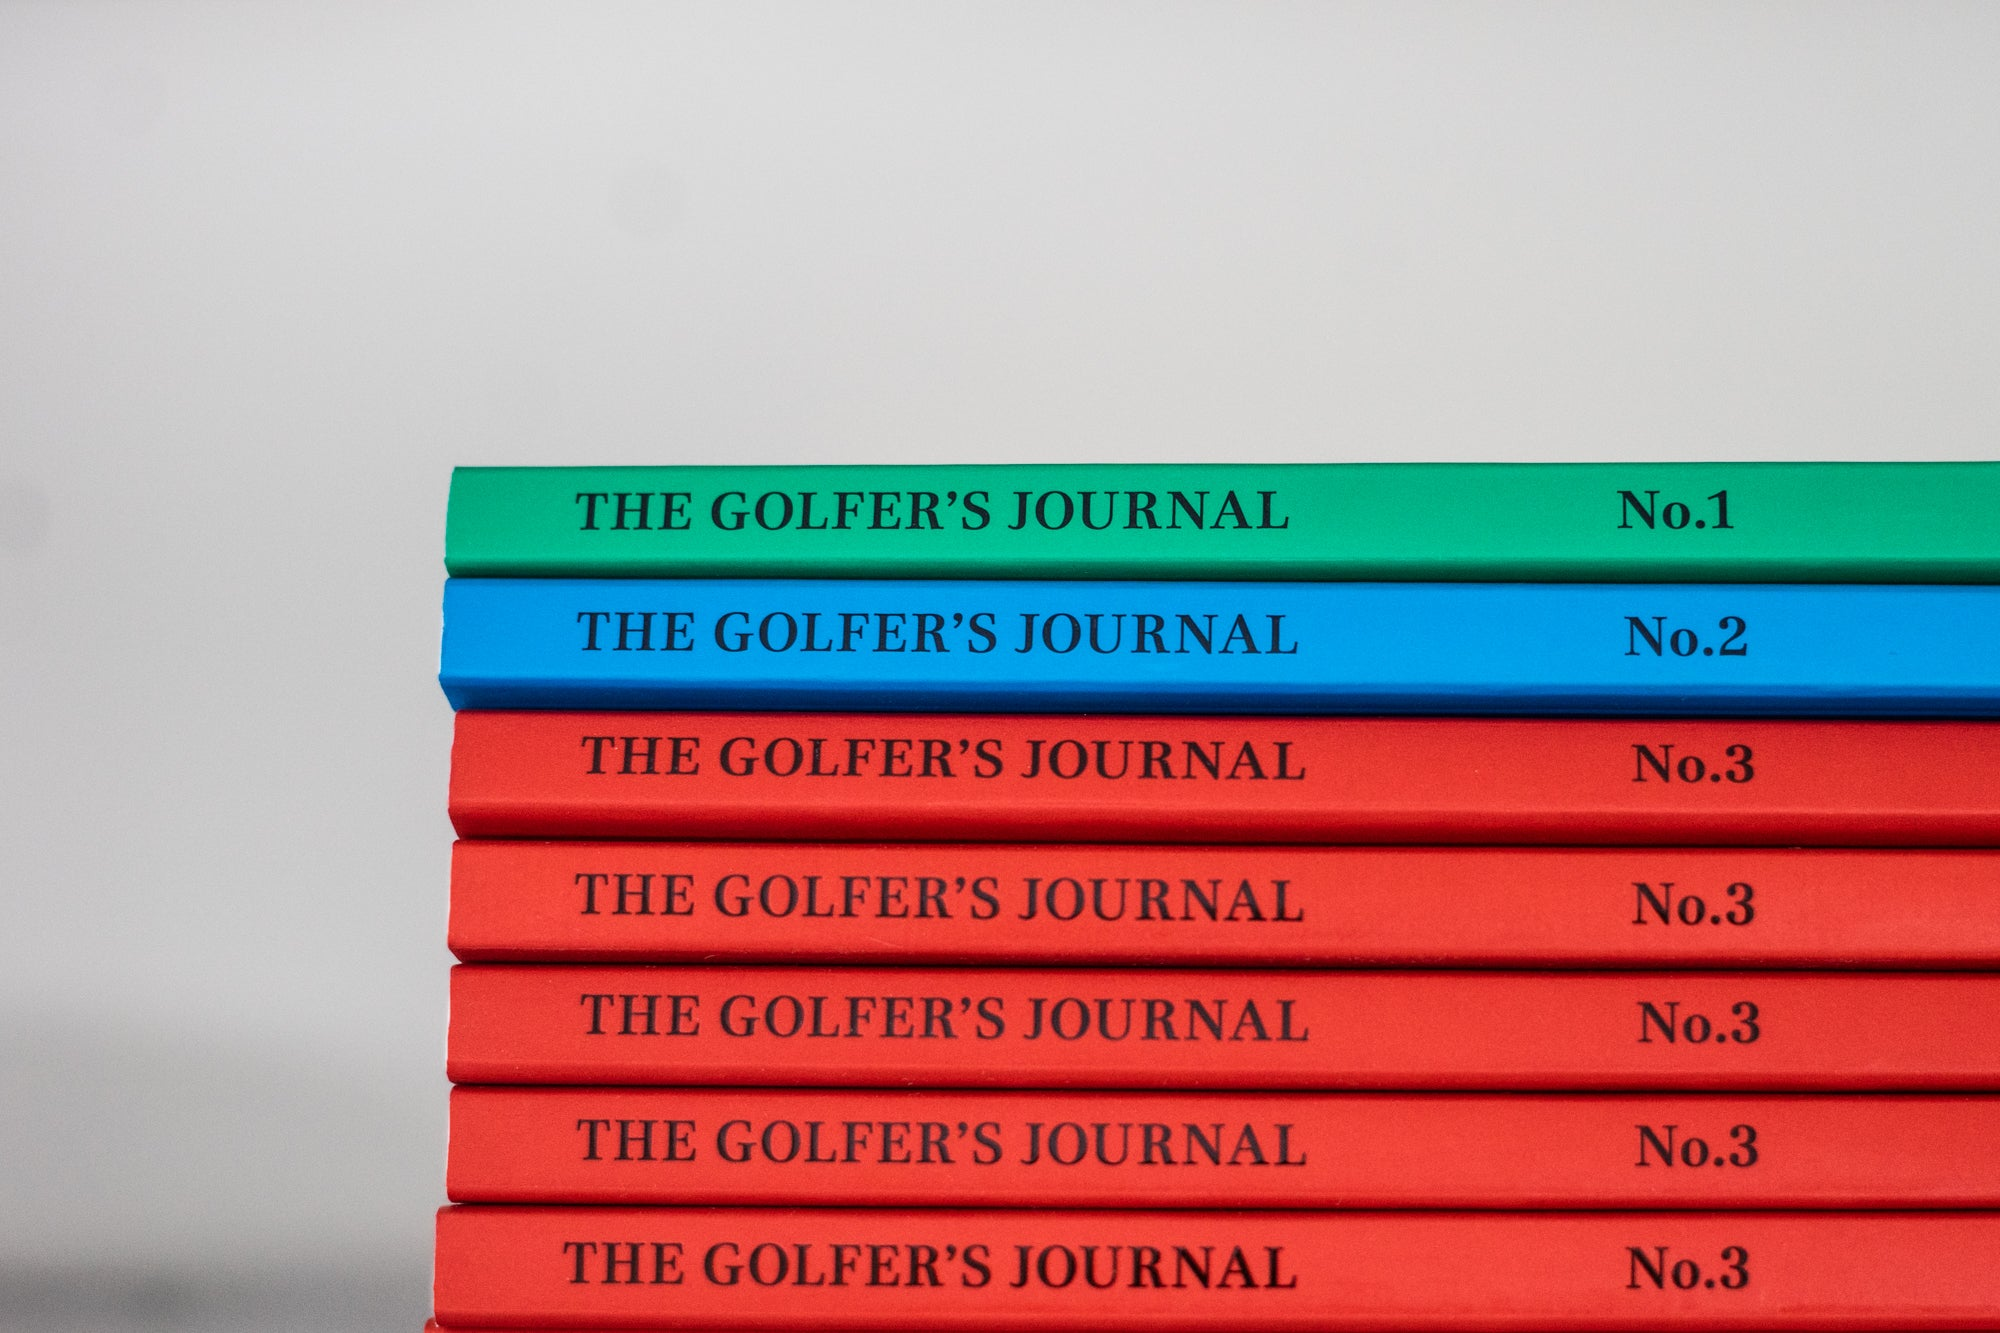 The Golfer's Journal Issues 1 to 3 stacked up